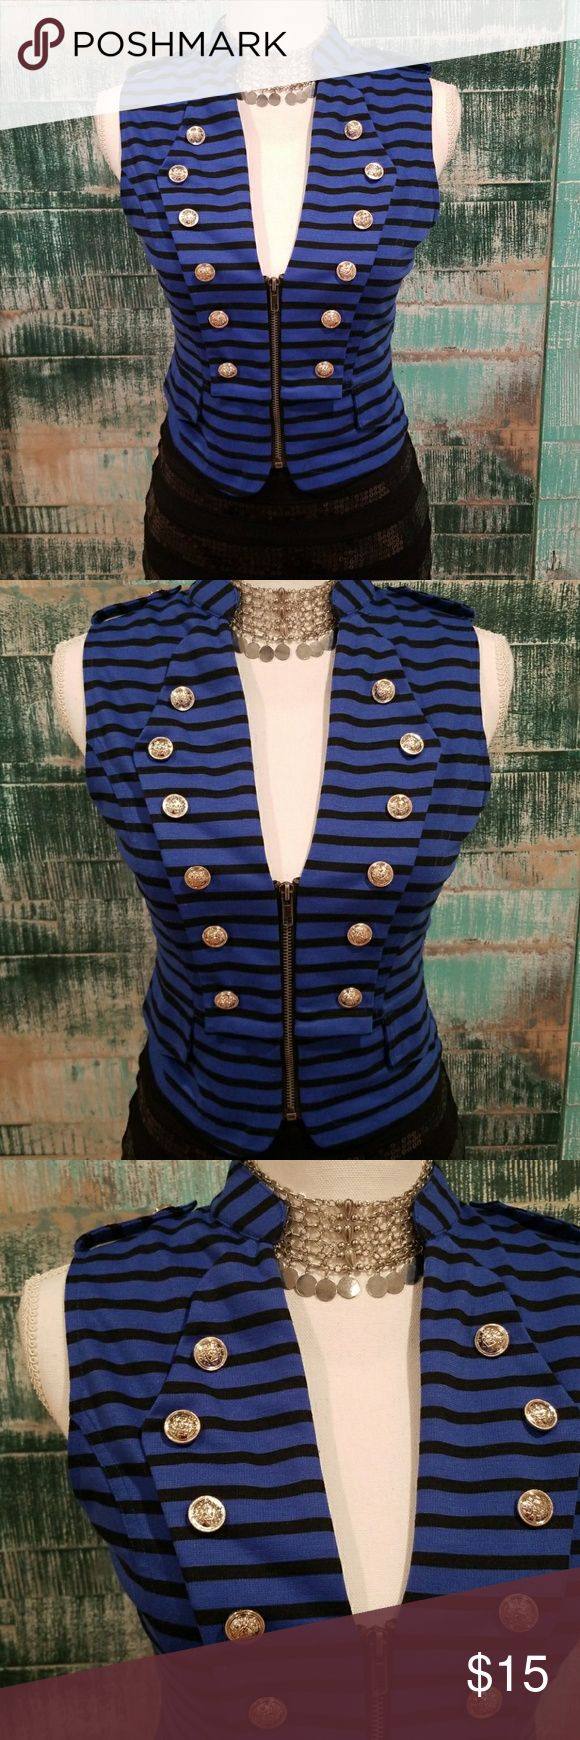 NWOT Forever 21 Striped Zip Vest Medium Exquisite details in this very well made vest! Never worn! Pictured here with Express Sequin Mini Skirt which is not includes but available in another listing. Bundle and save! Forever 21 Tops